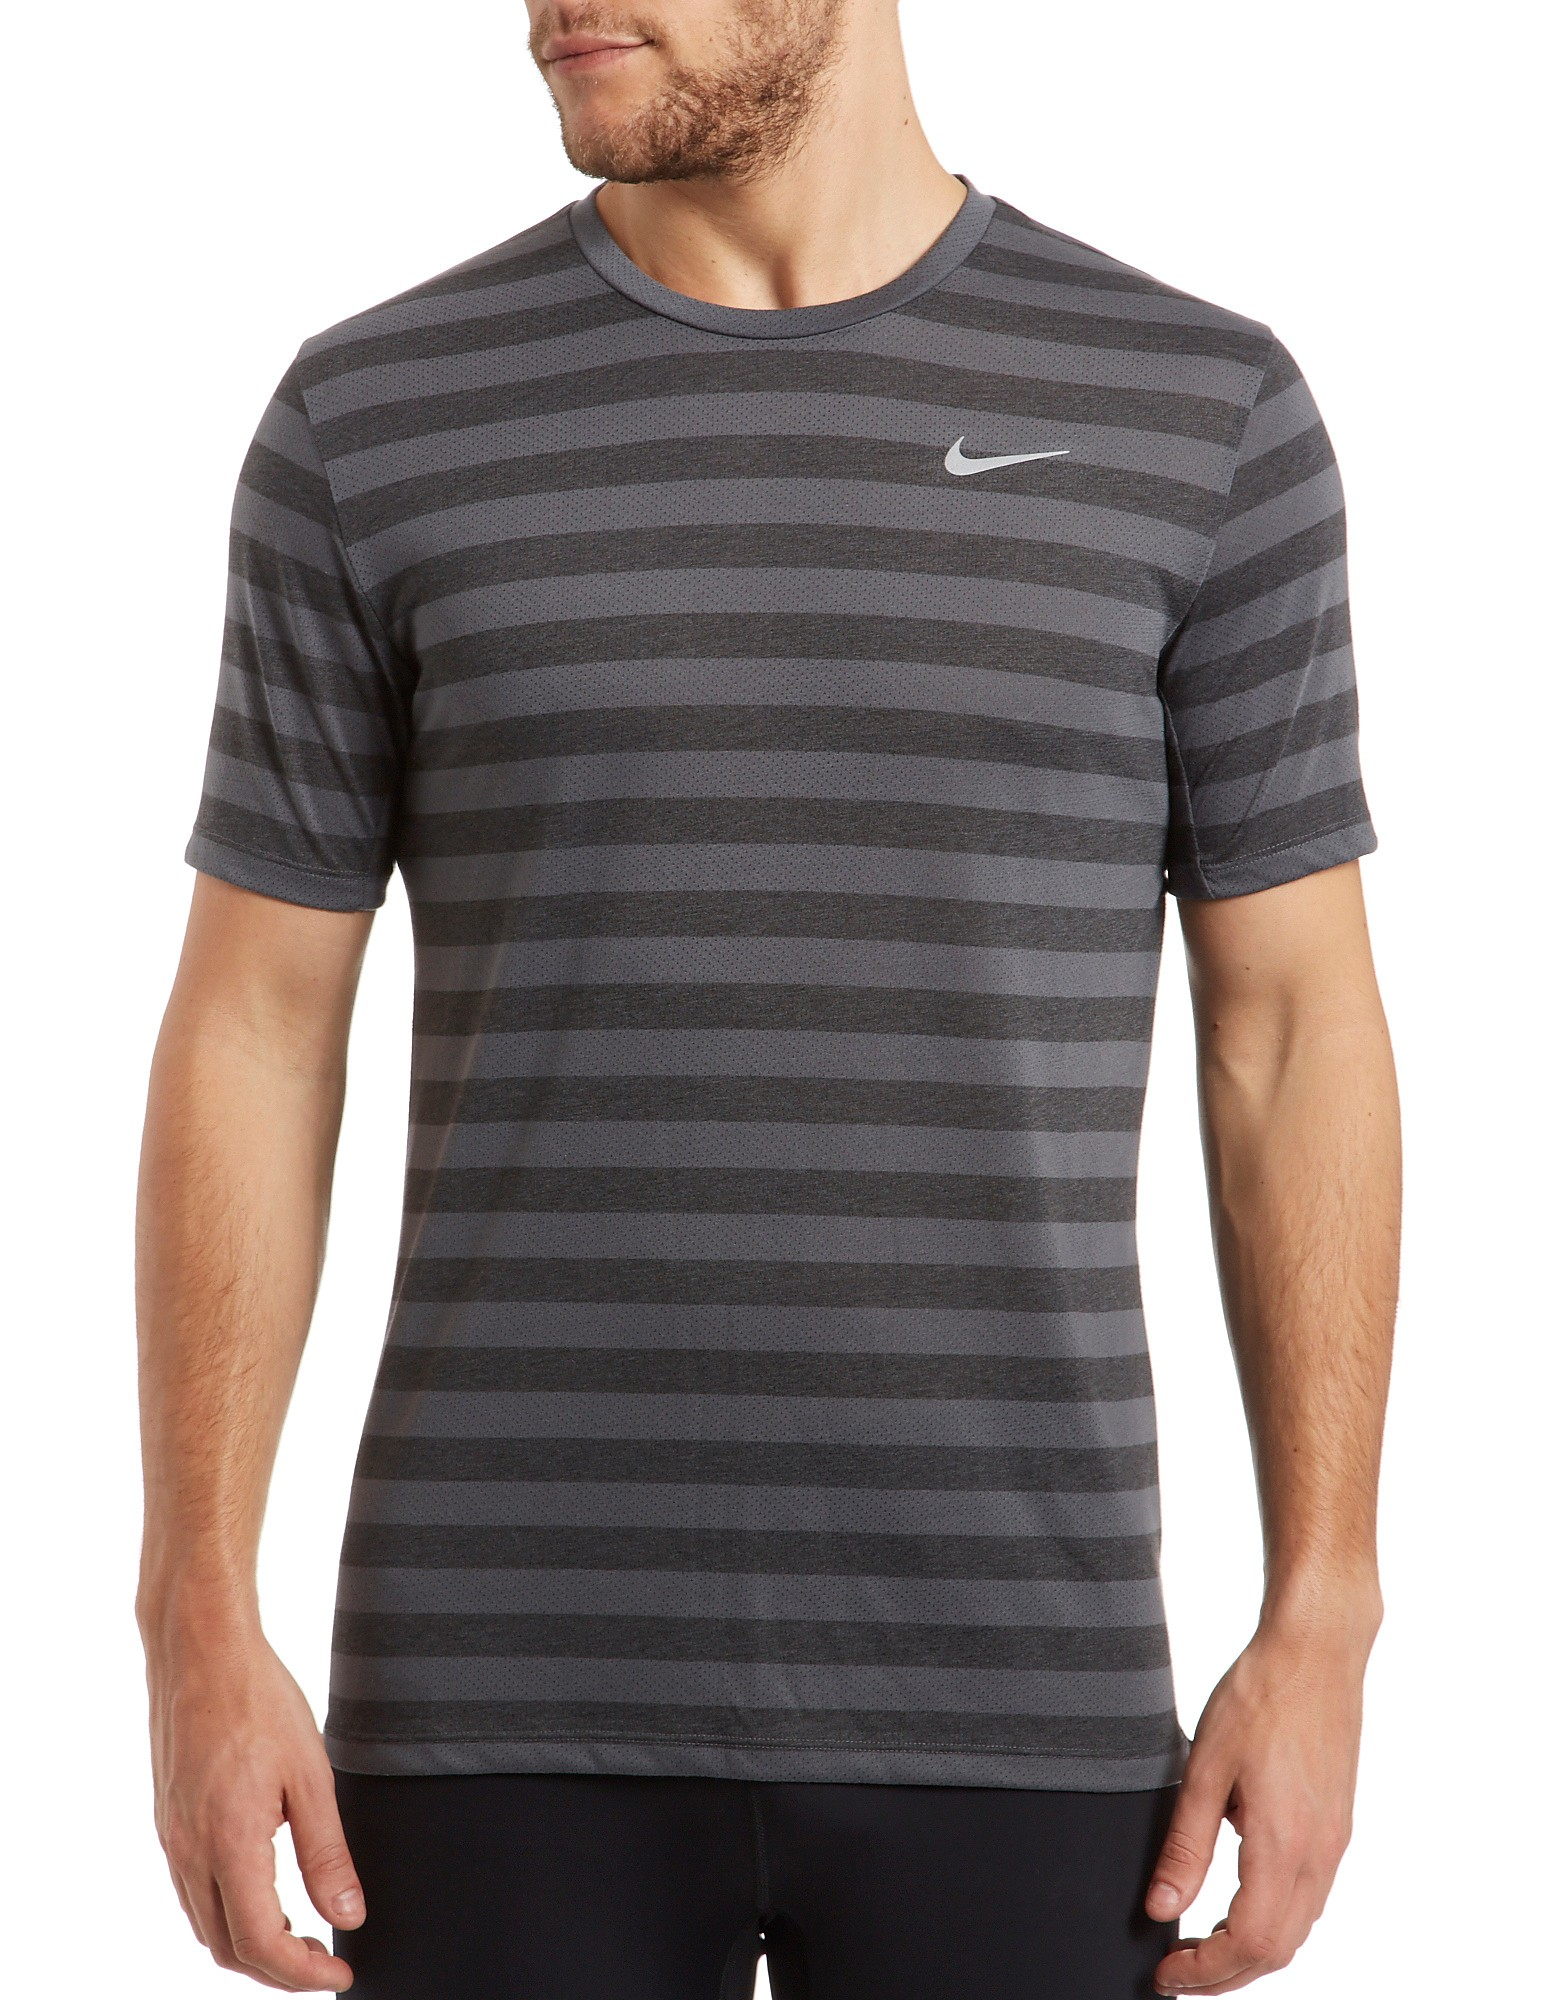 Nike Dri-fit Tail Wind Stripe T-Shirt product image